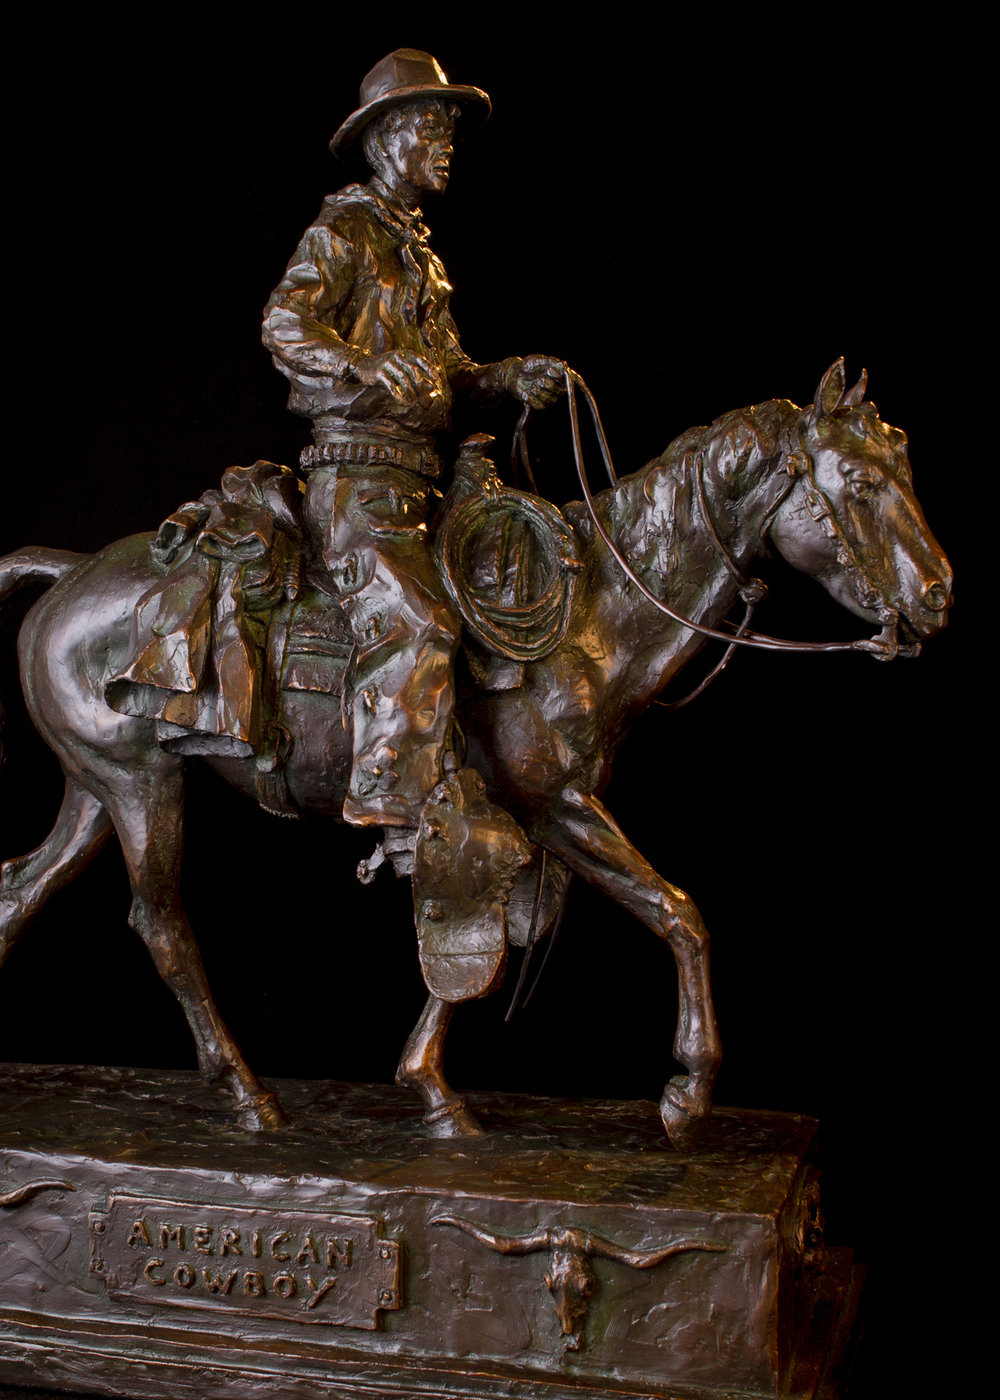 """American Cowboy (Part of White House Collection) 